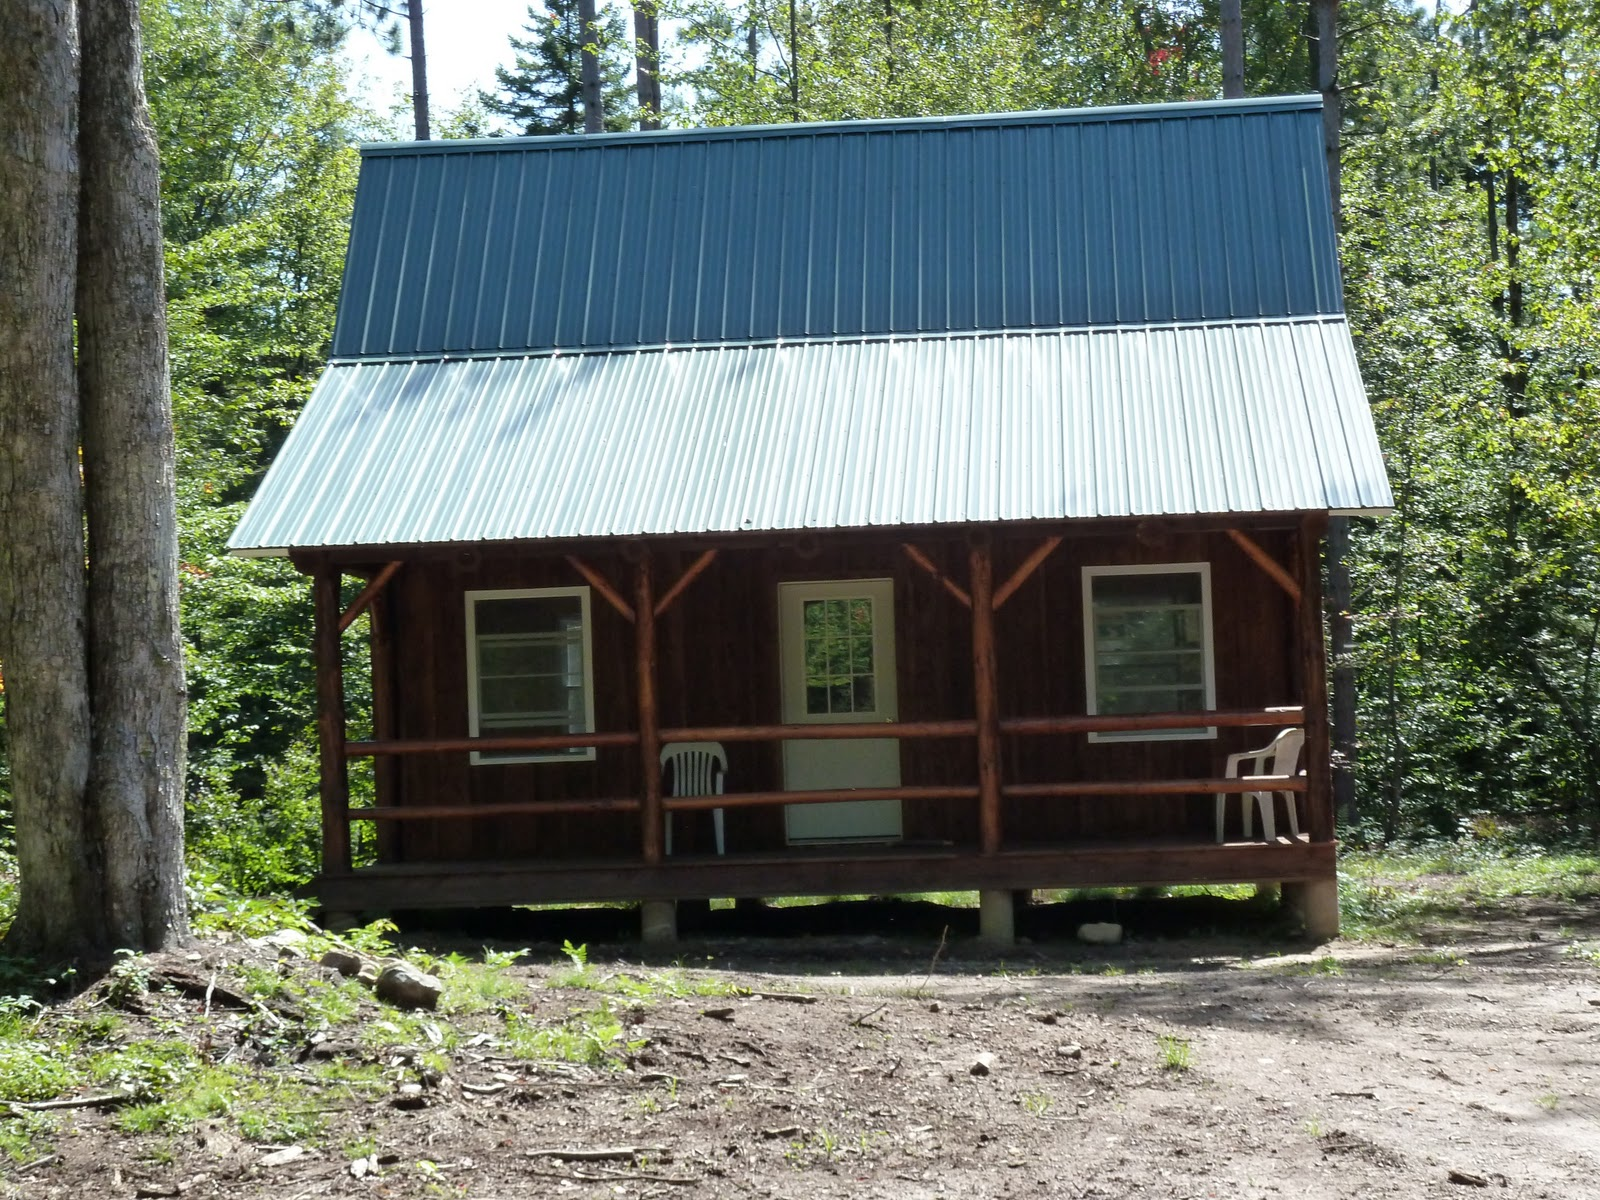 ... Cabin Plans besides 16X24 Cabin Floor Plans With Loft. on floor plans